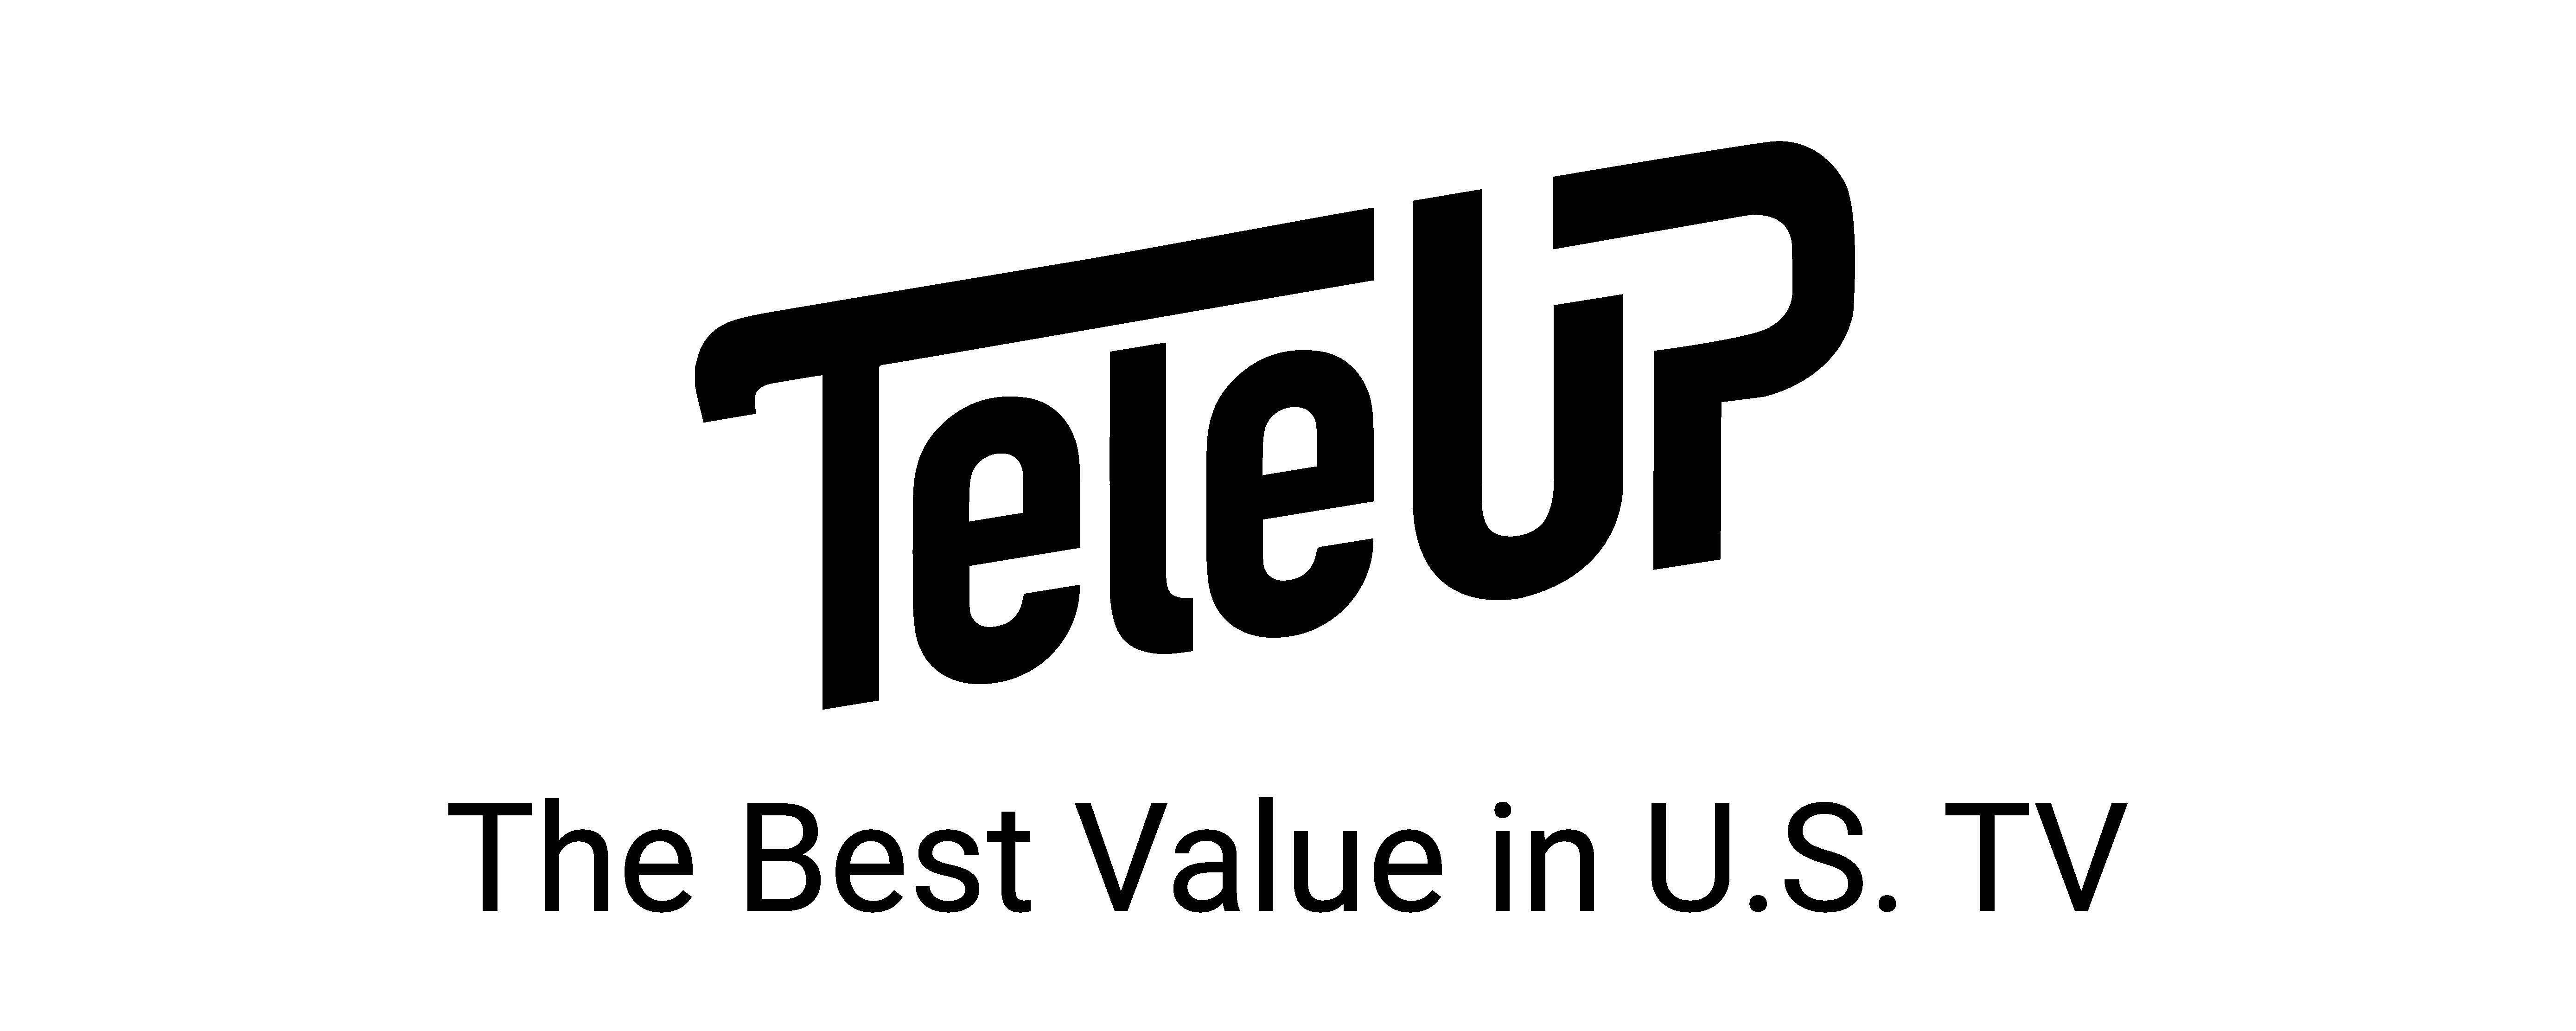 teleup-logo-new-best-value_Page_4.jpg